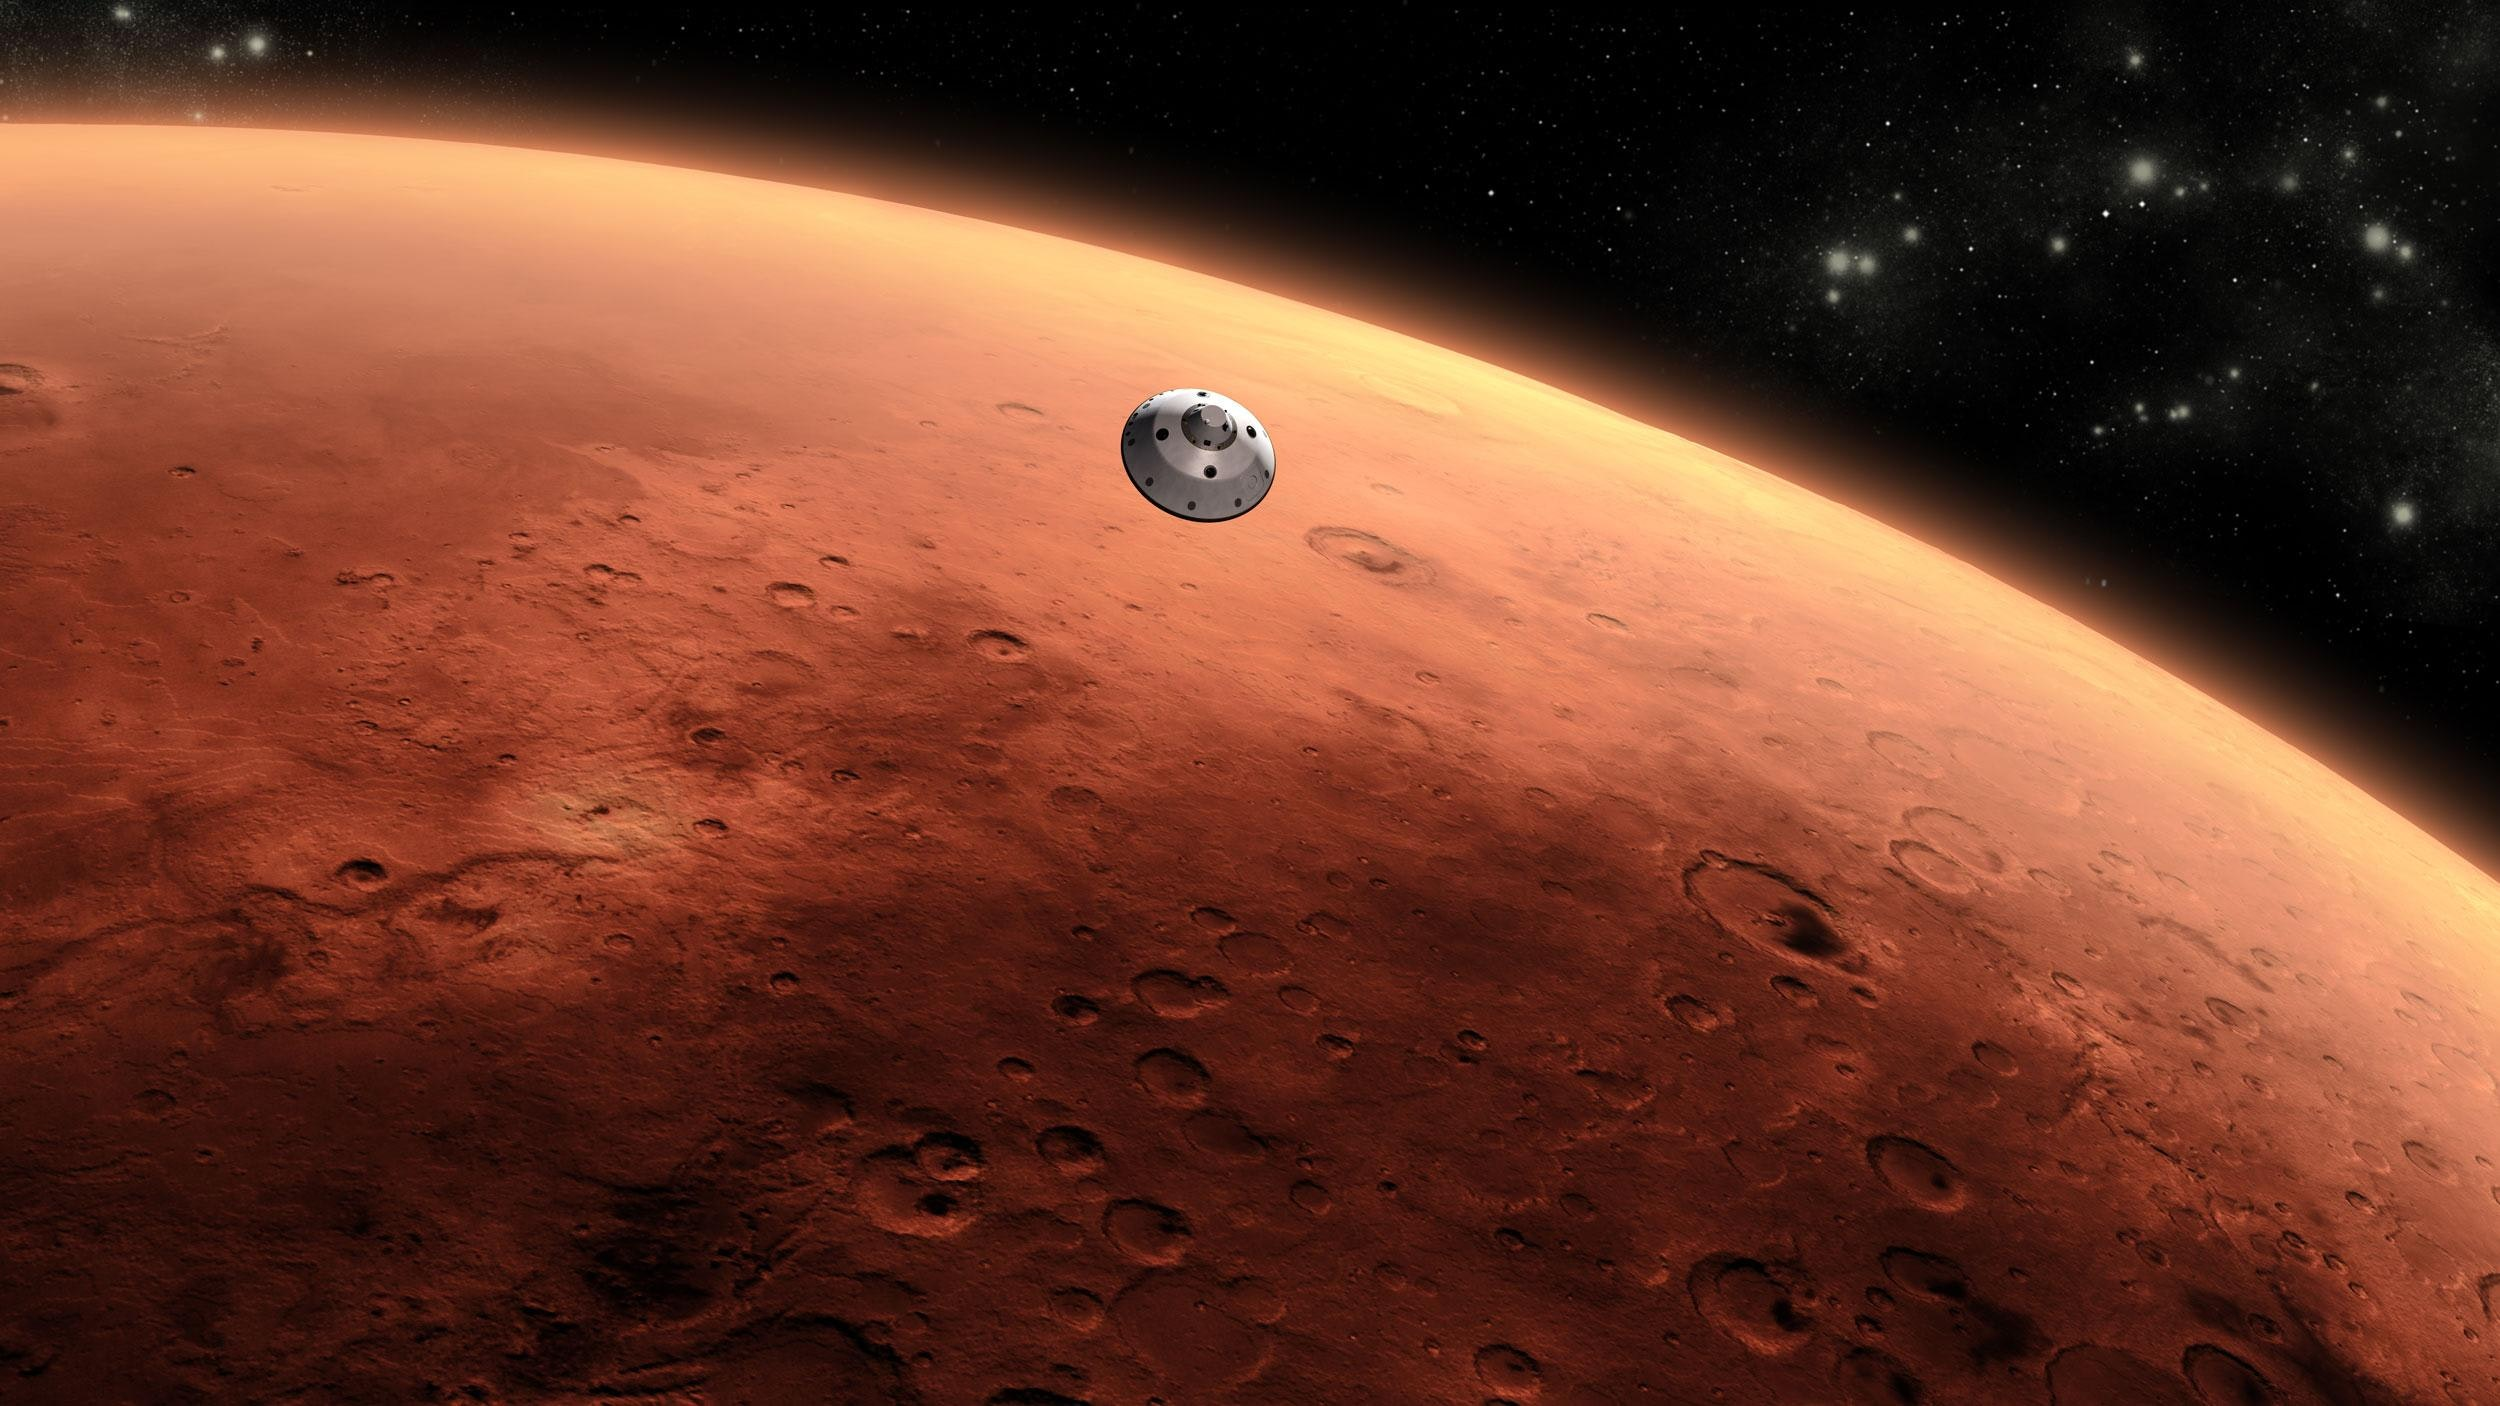 Elon Musk releases details of plan to colonise Mars – here's what a planetary expert thinks